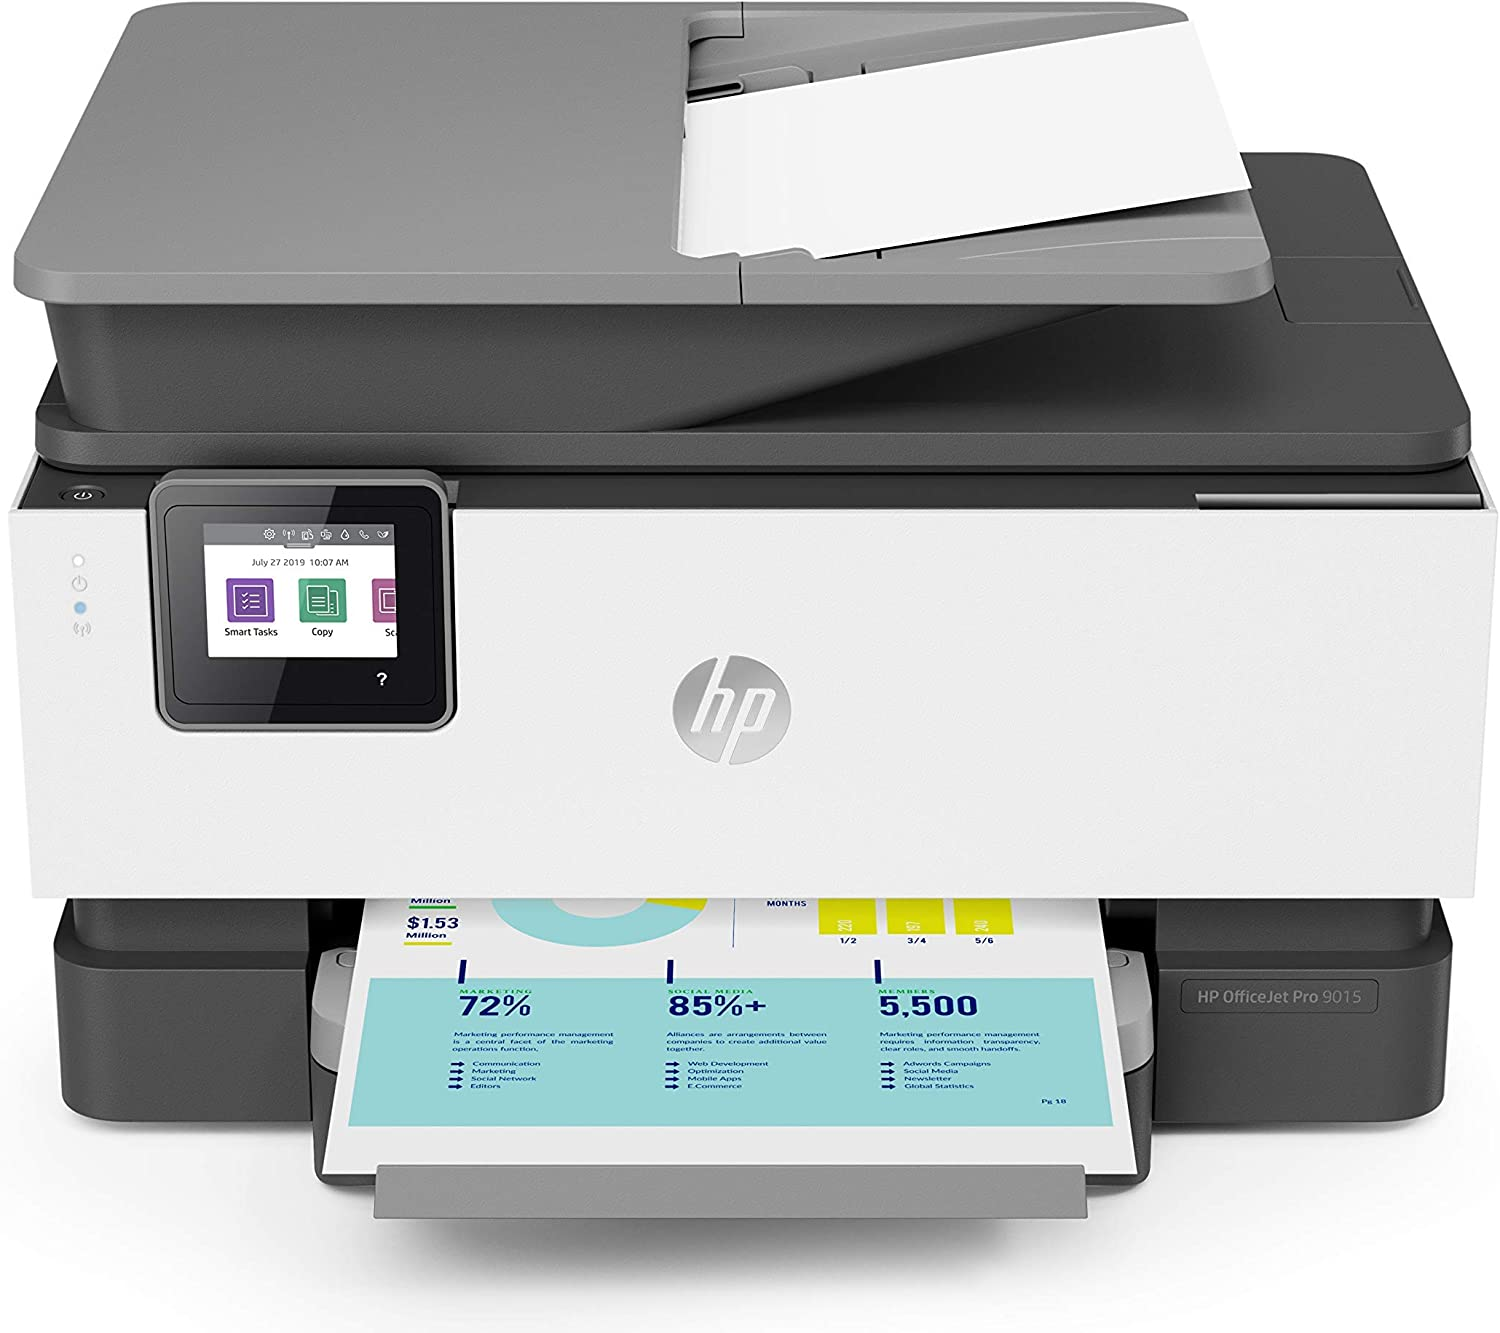 HP OfficeJet Pro 9015 All-in-One Wireless Printer, with Smart Tasks for Smart Office Productivity & Never Run Out of Ink with HP Instant Ink (1KR42A) (Renewed)